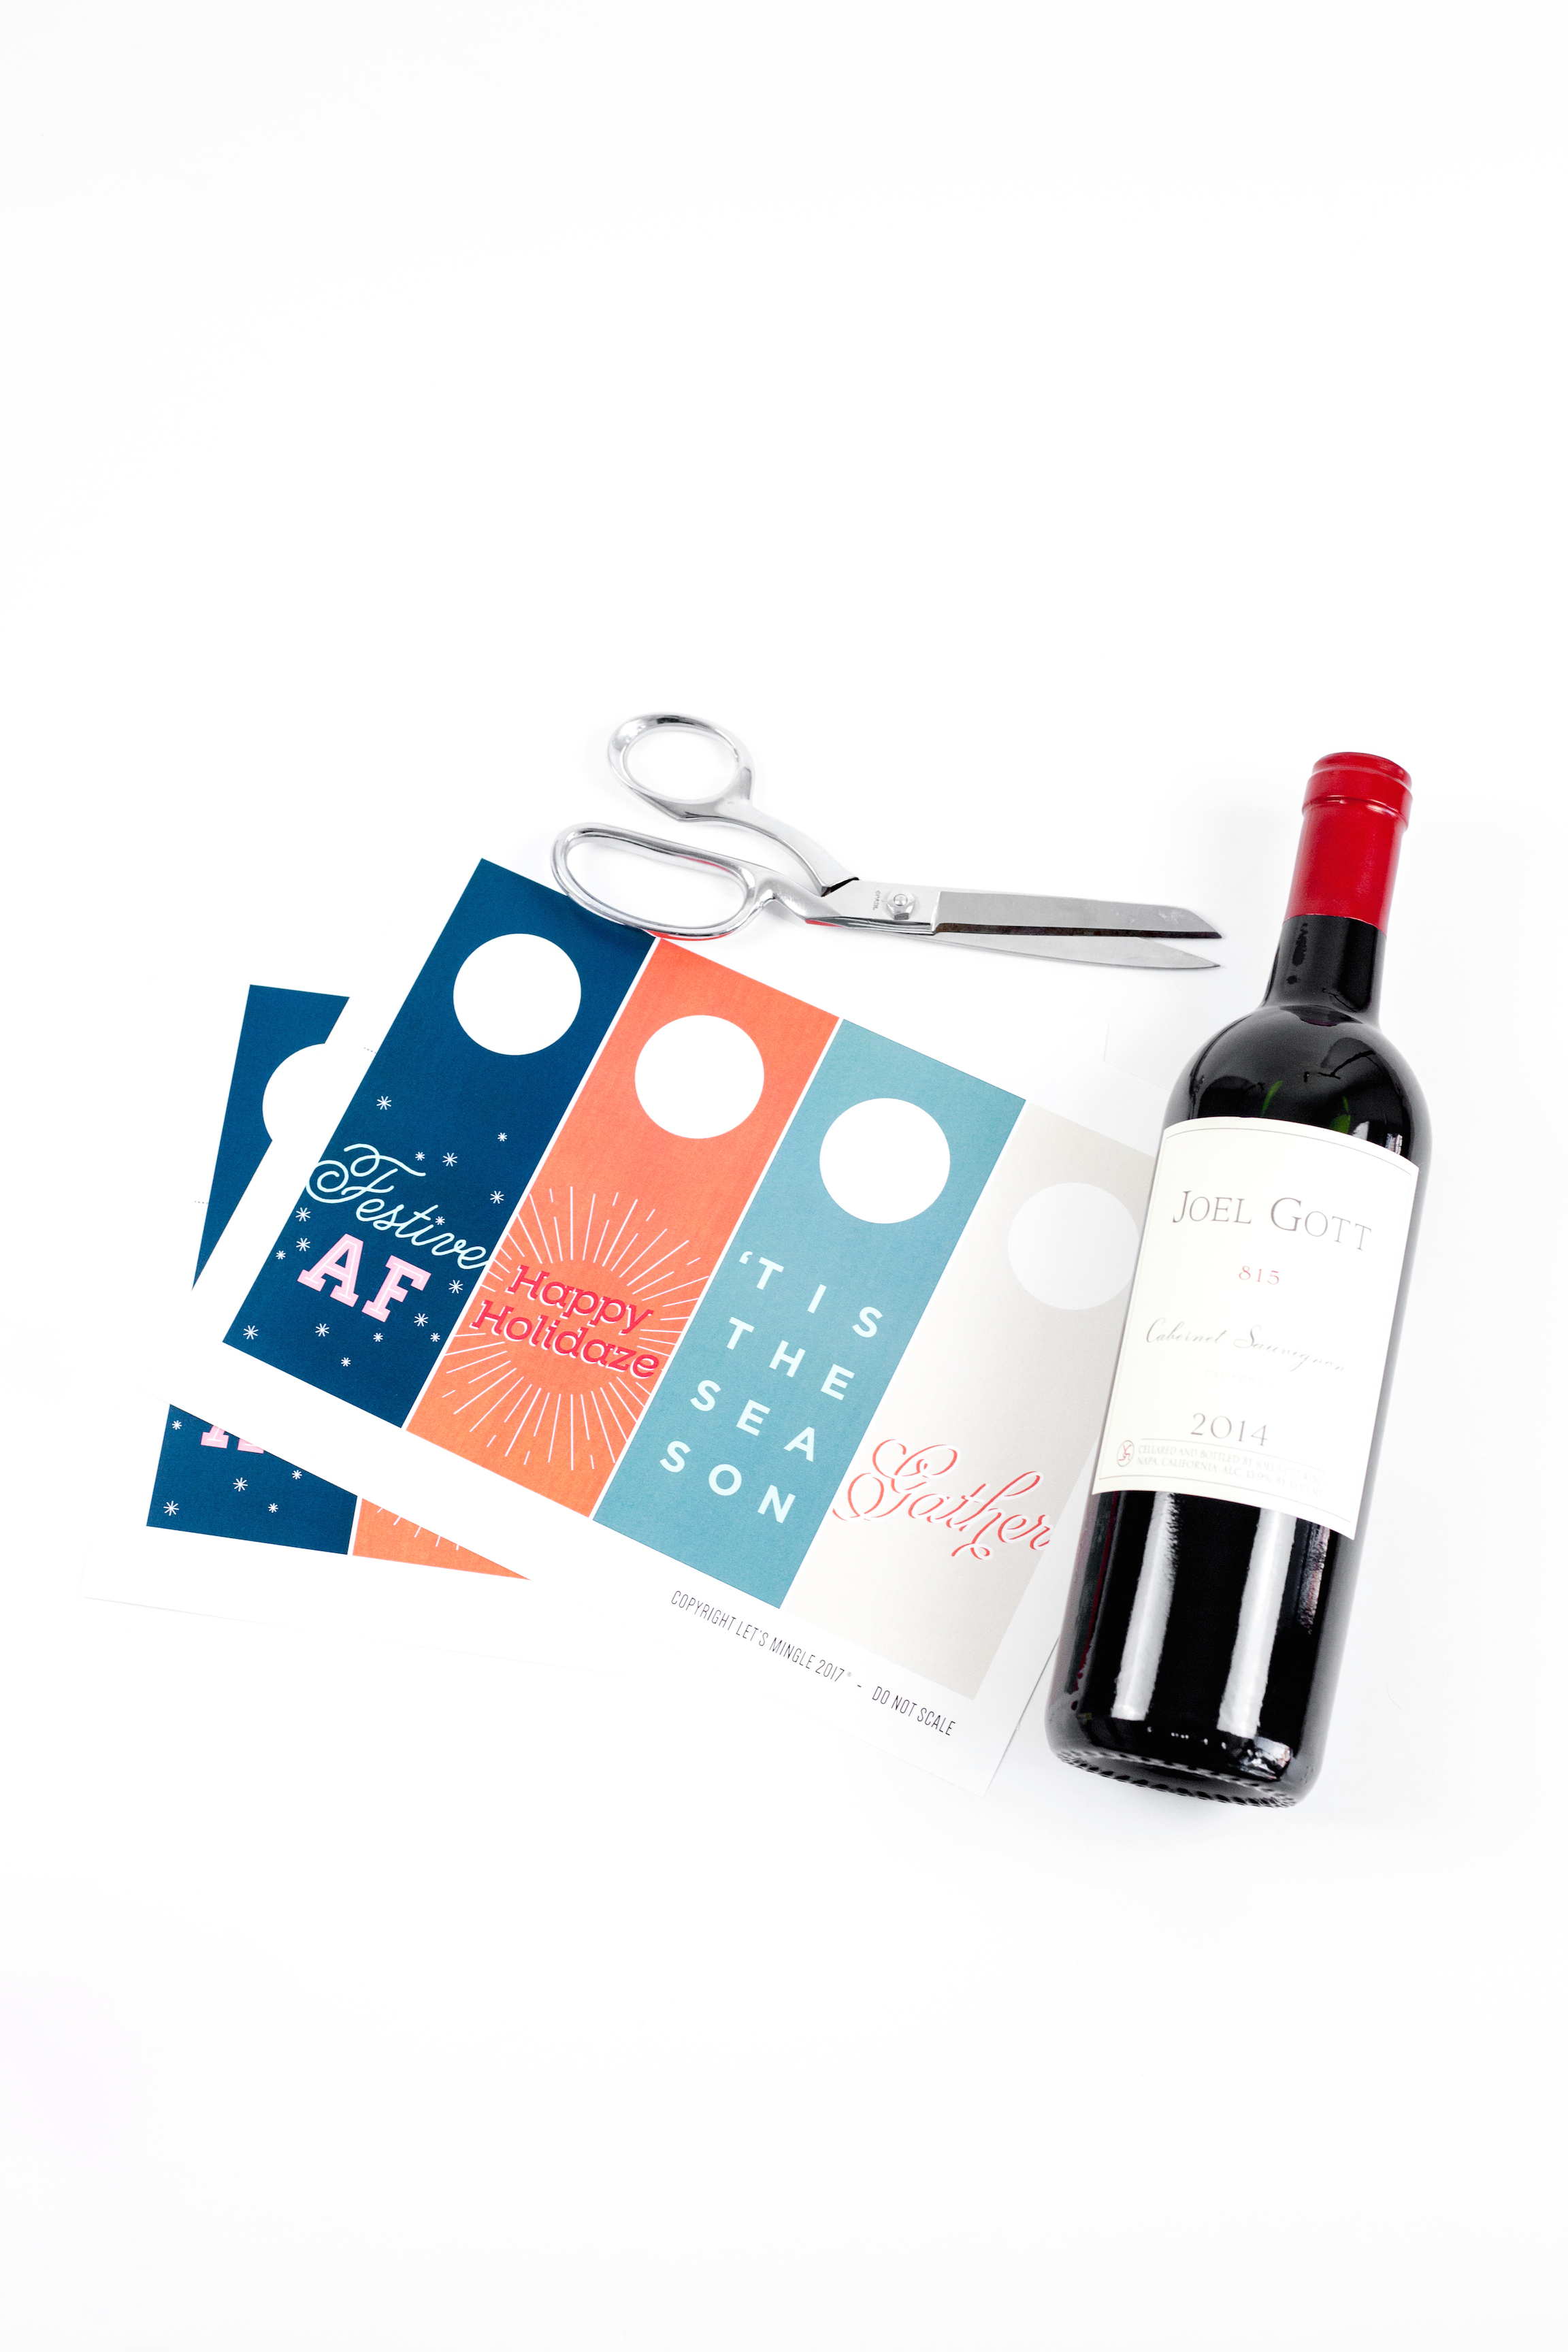 photo about Printable Wine Bottle Tags named Printable Wine Bottle Present Tags - Makes it possible for Mingle Site